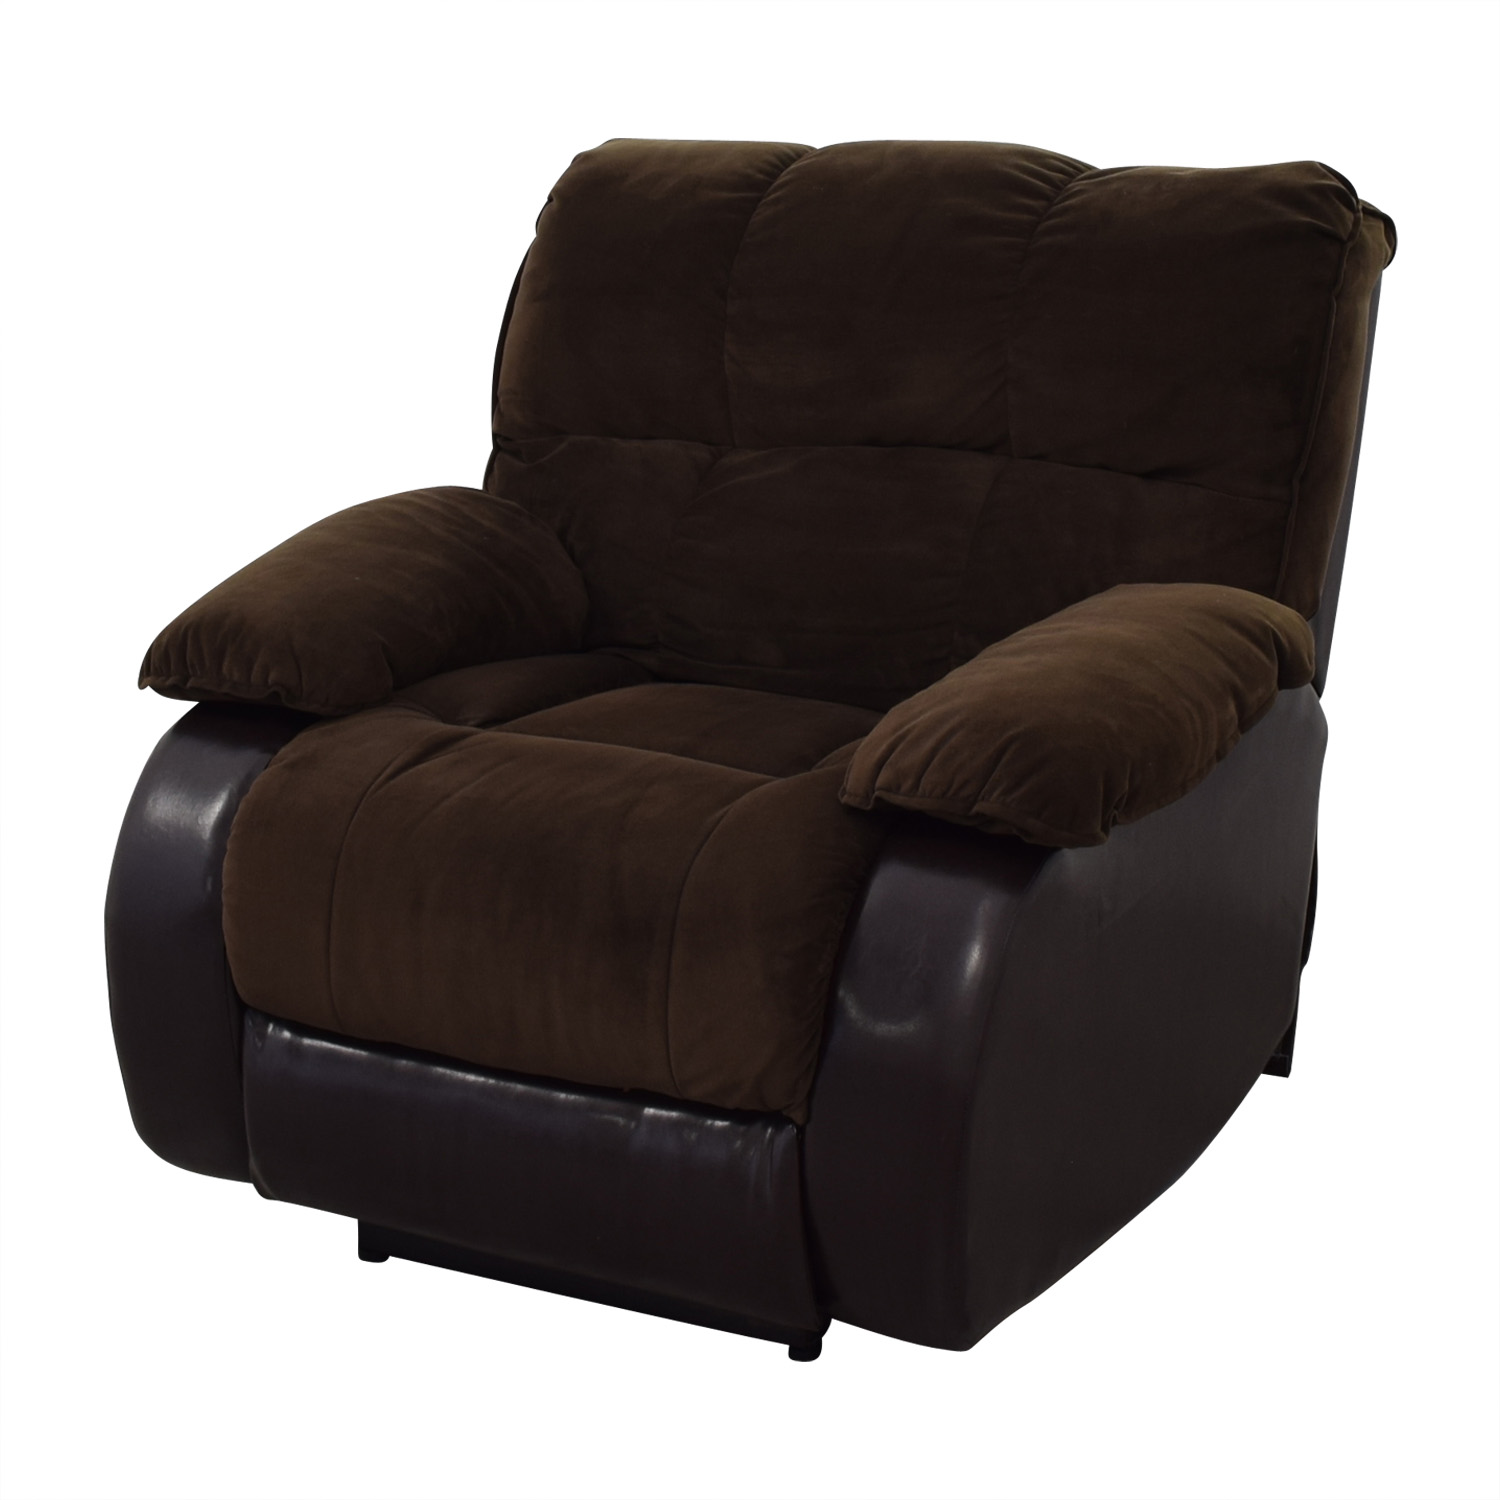 Raymour & Flanigan Raymour & Flanigan Recliner coupon